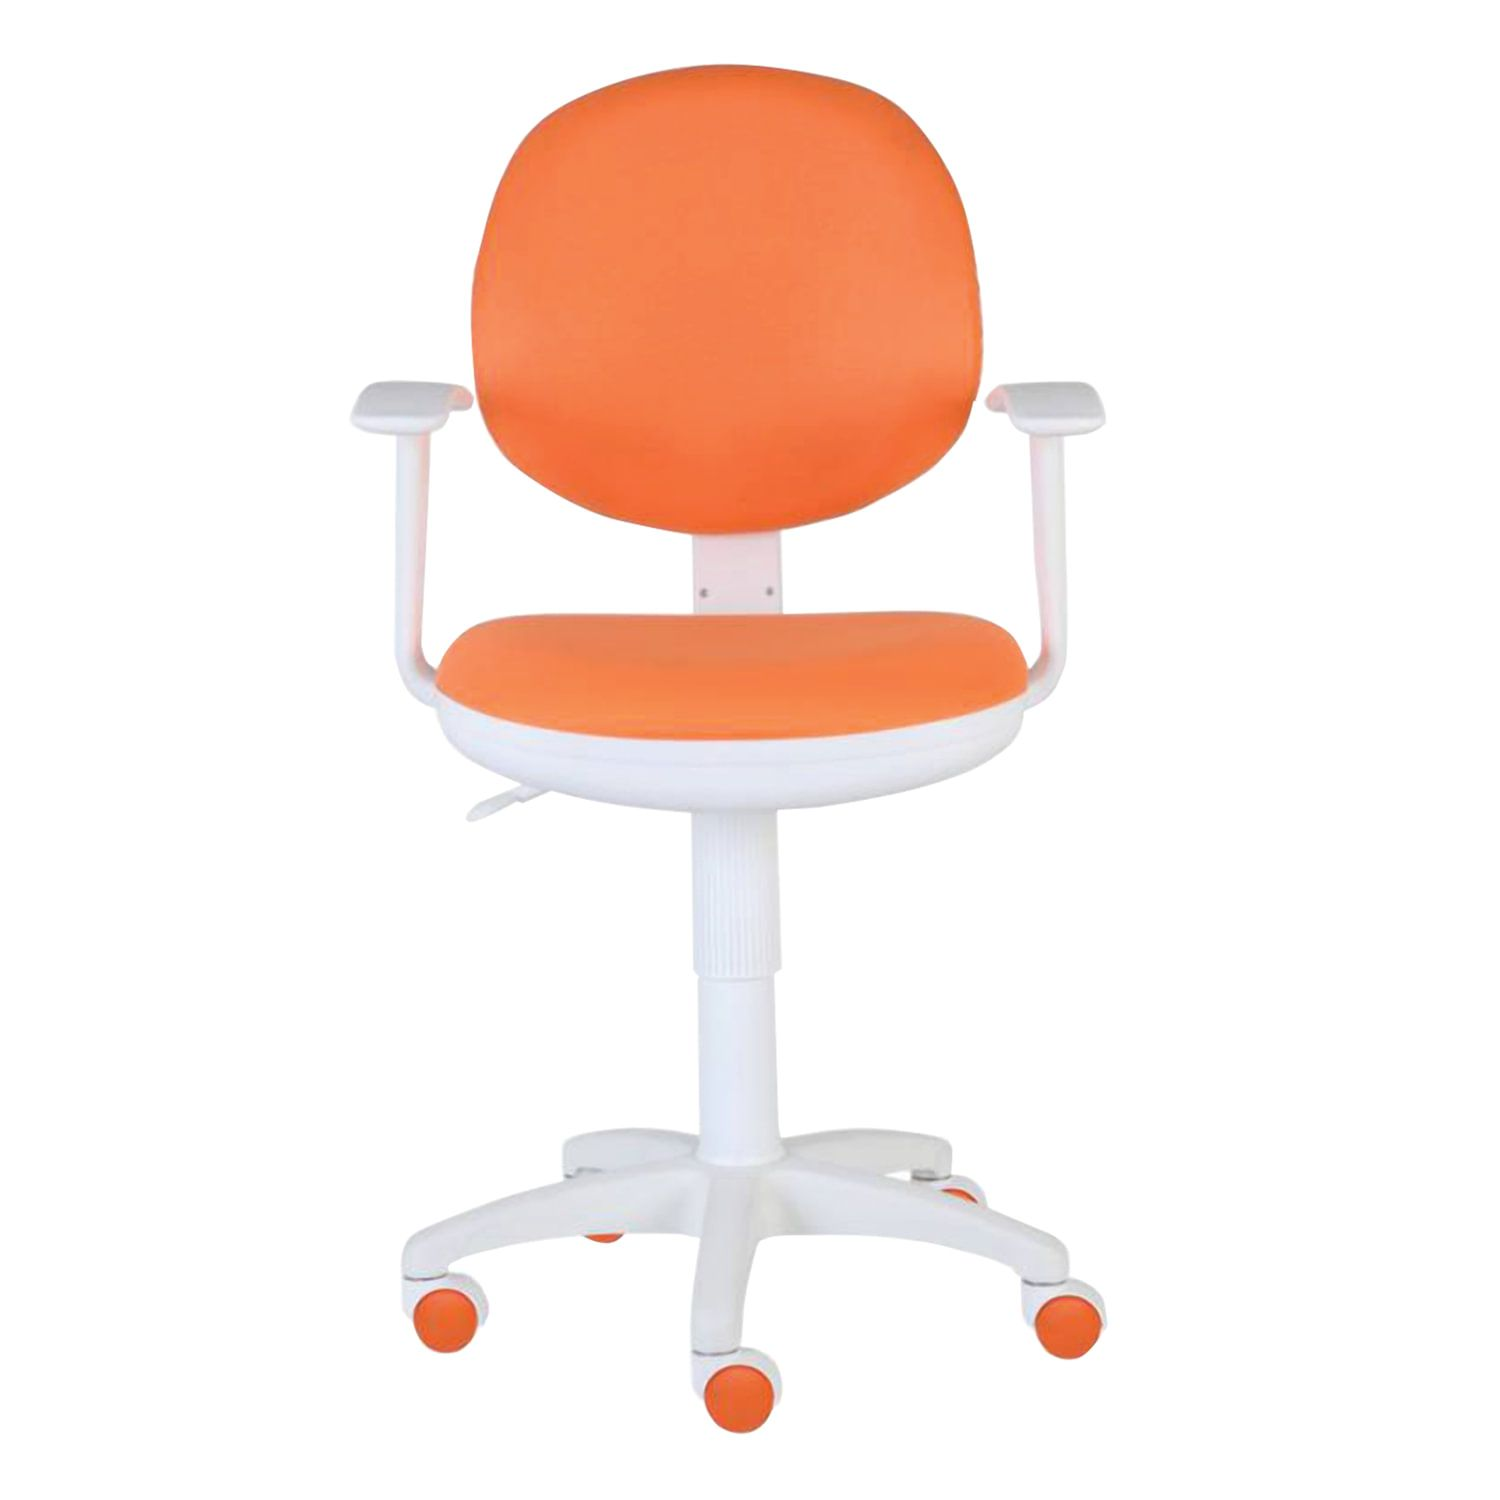 Chair CH-W356AXSN with armrests, orange, plastic white